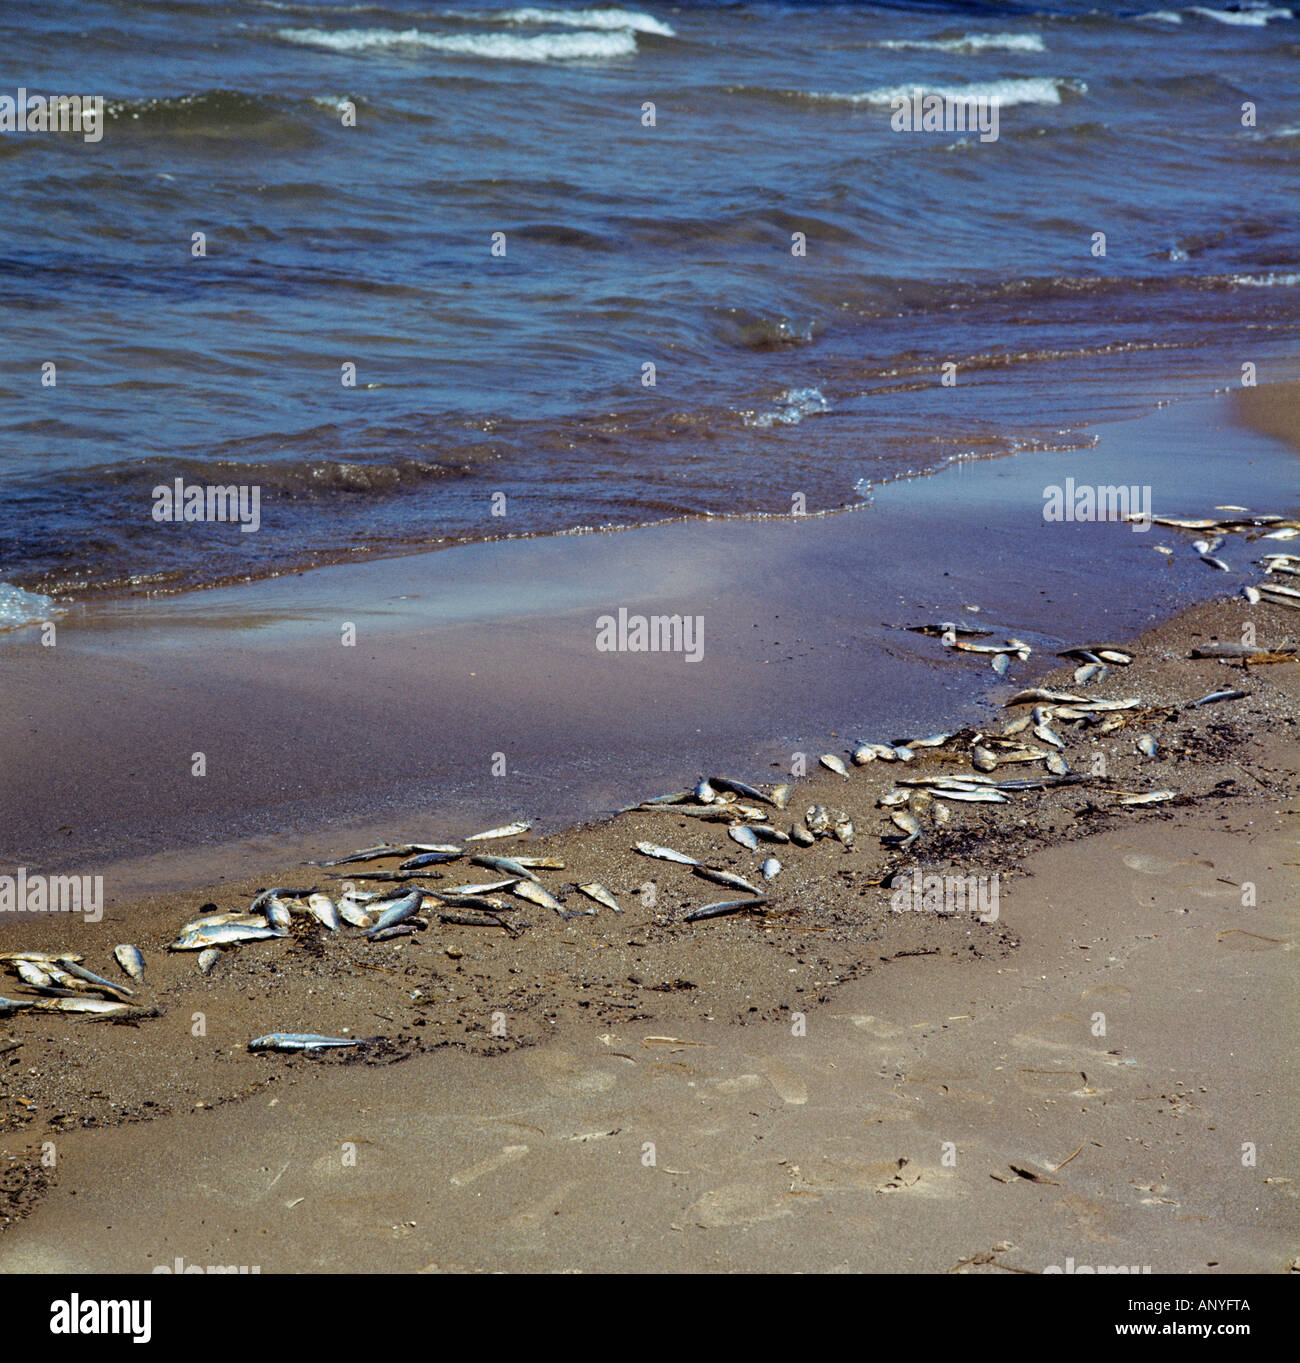 dead fishes at beach - Stock Image